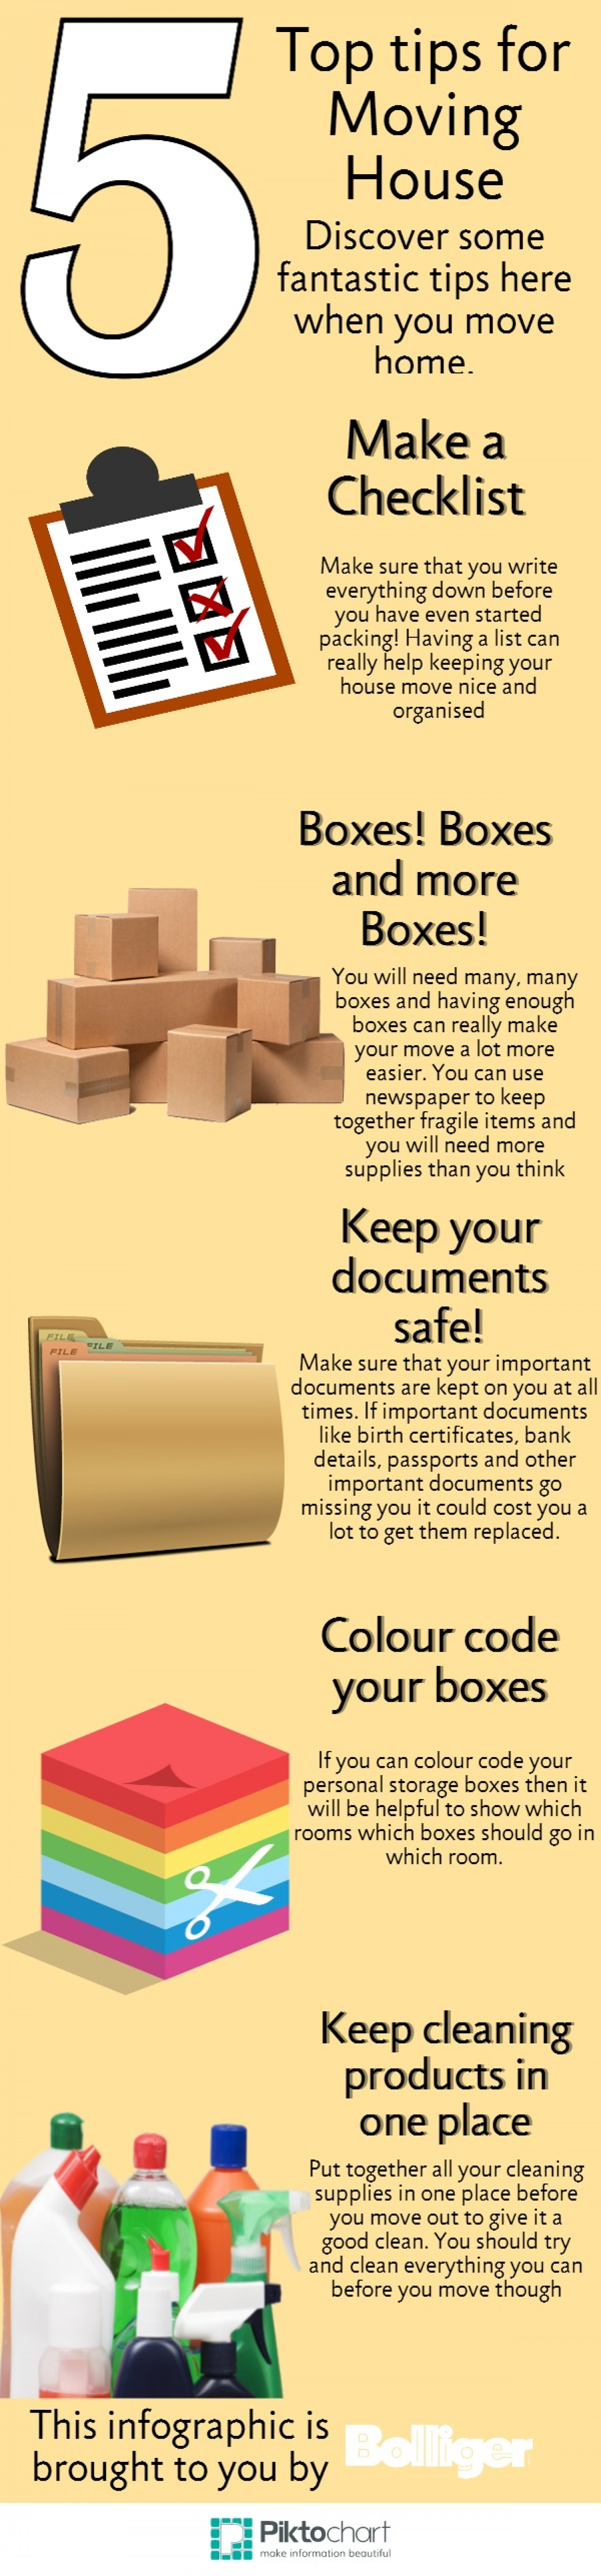 5 Top tips when moving house Infographic